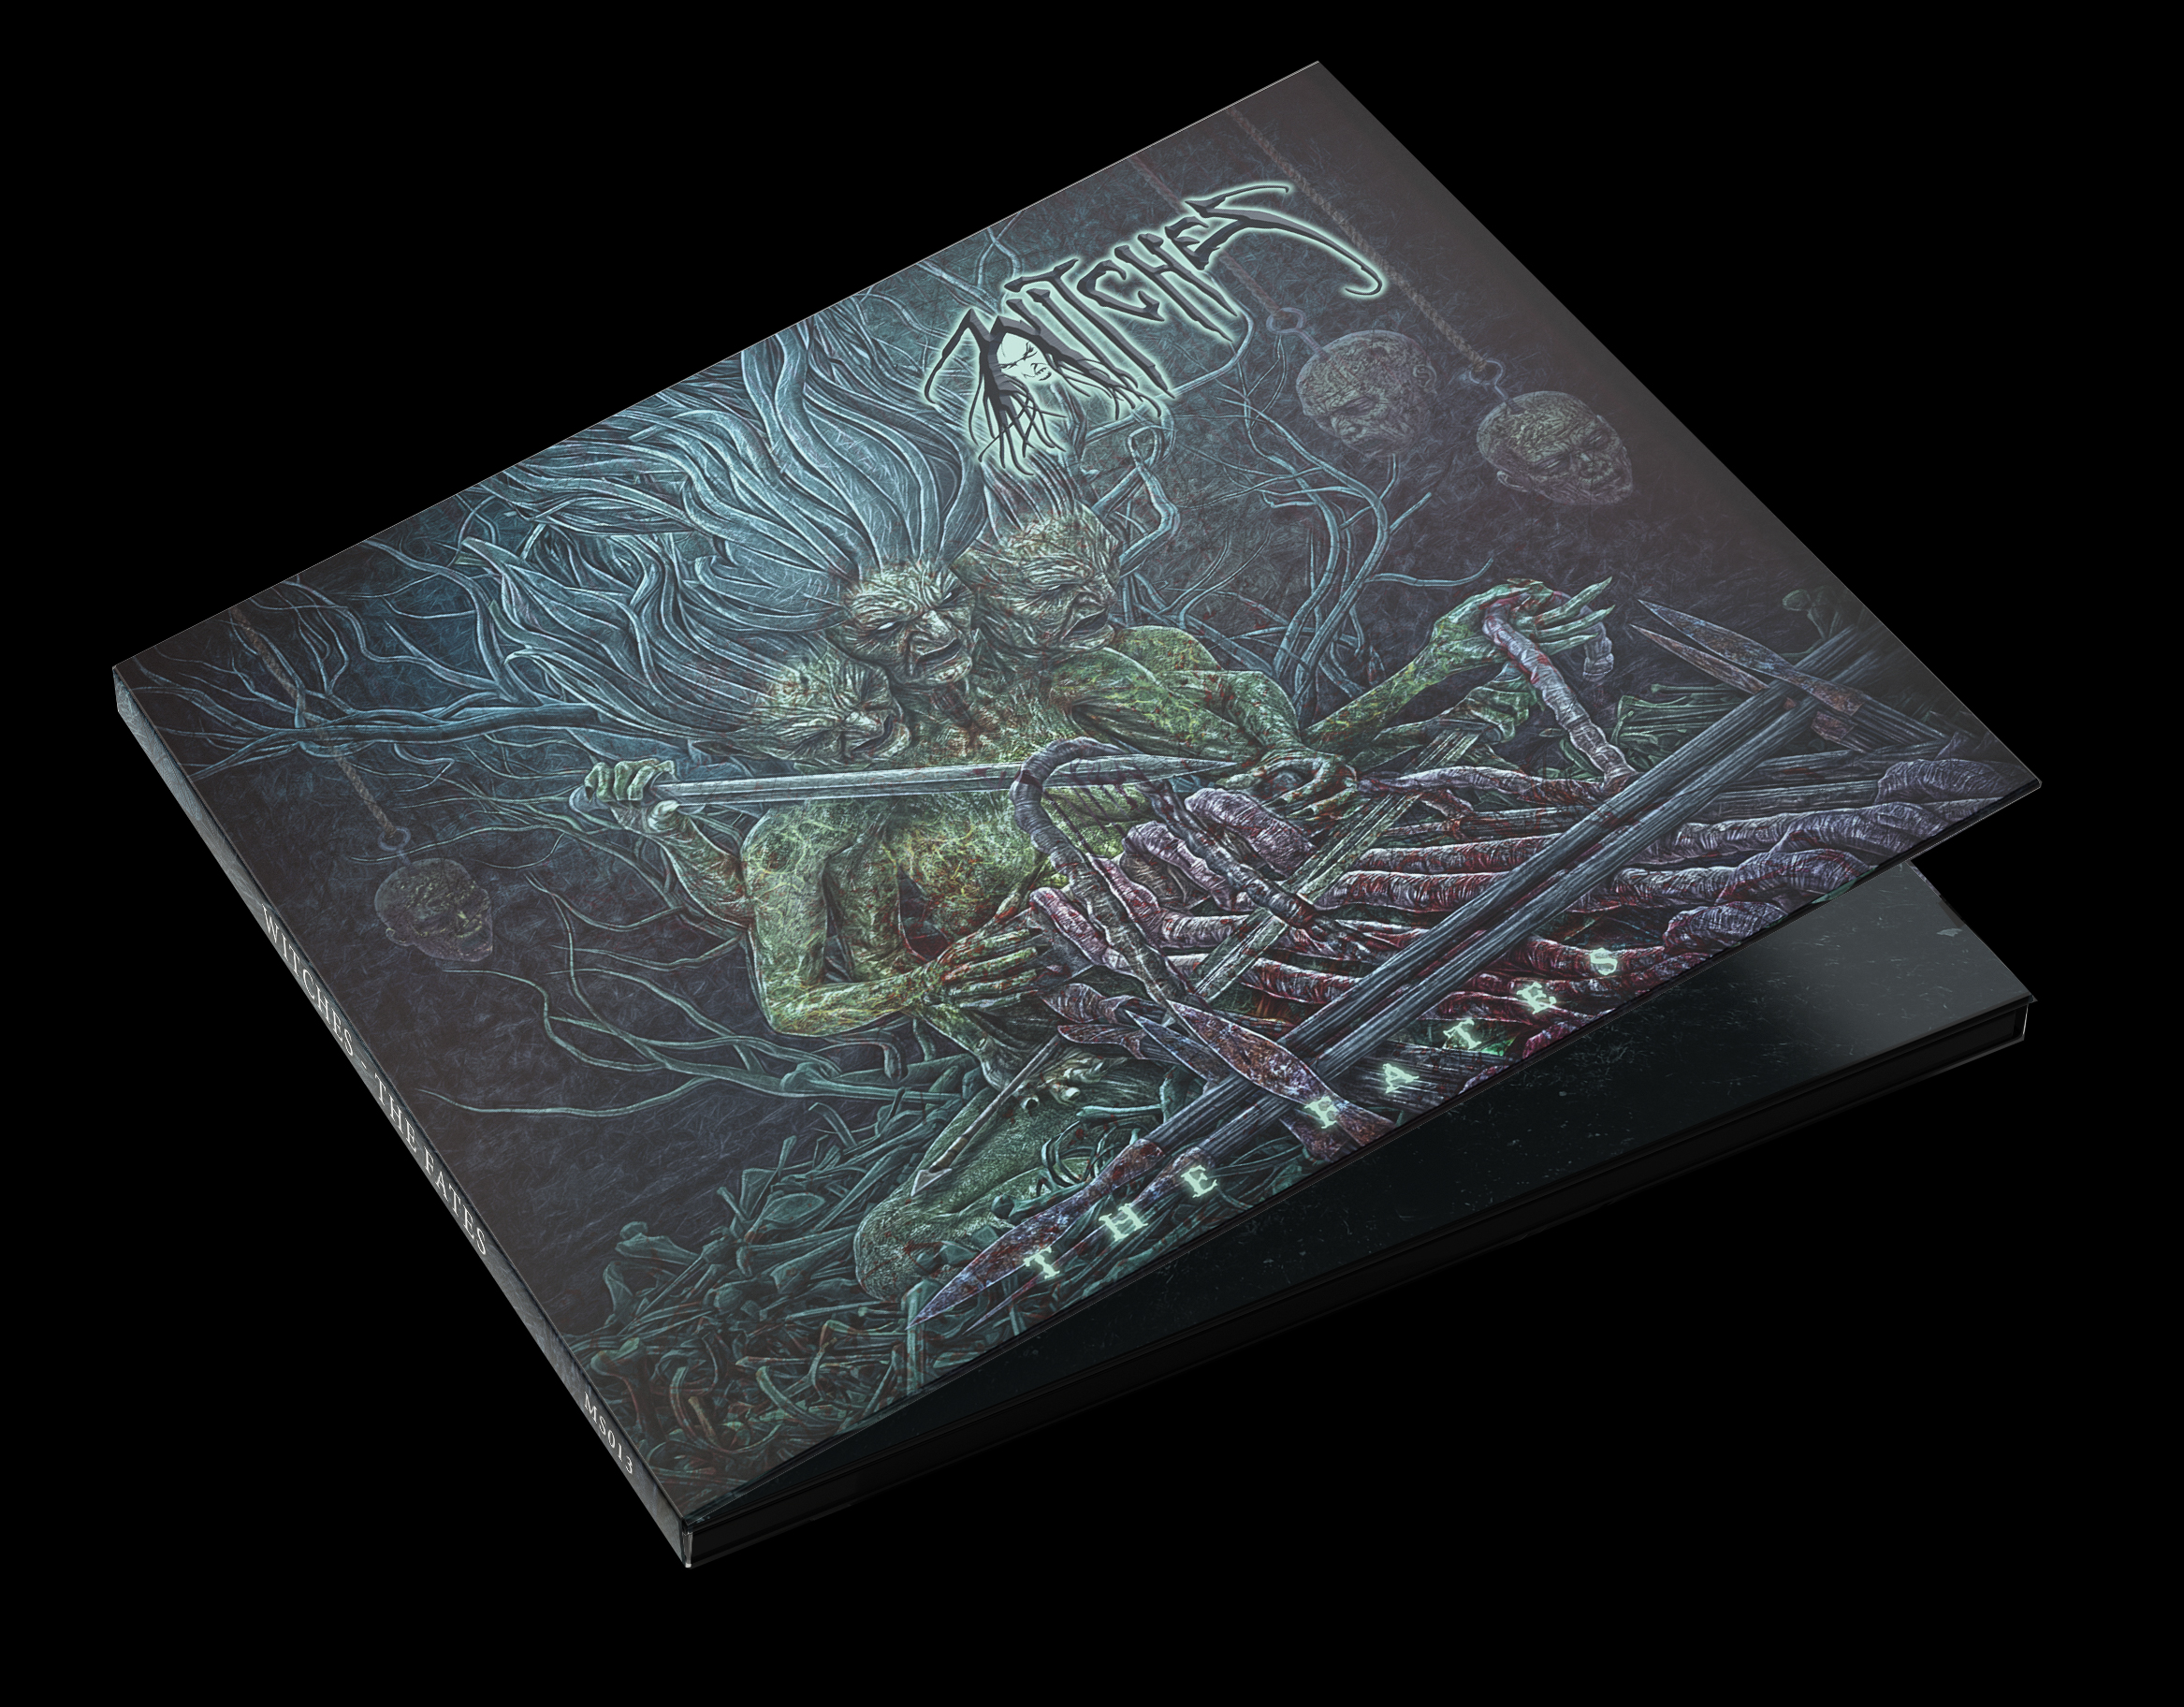 Witches The Fates CD Digipack